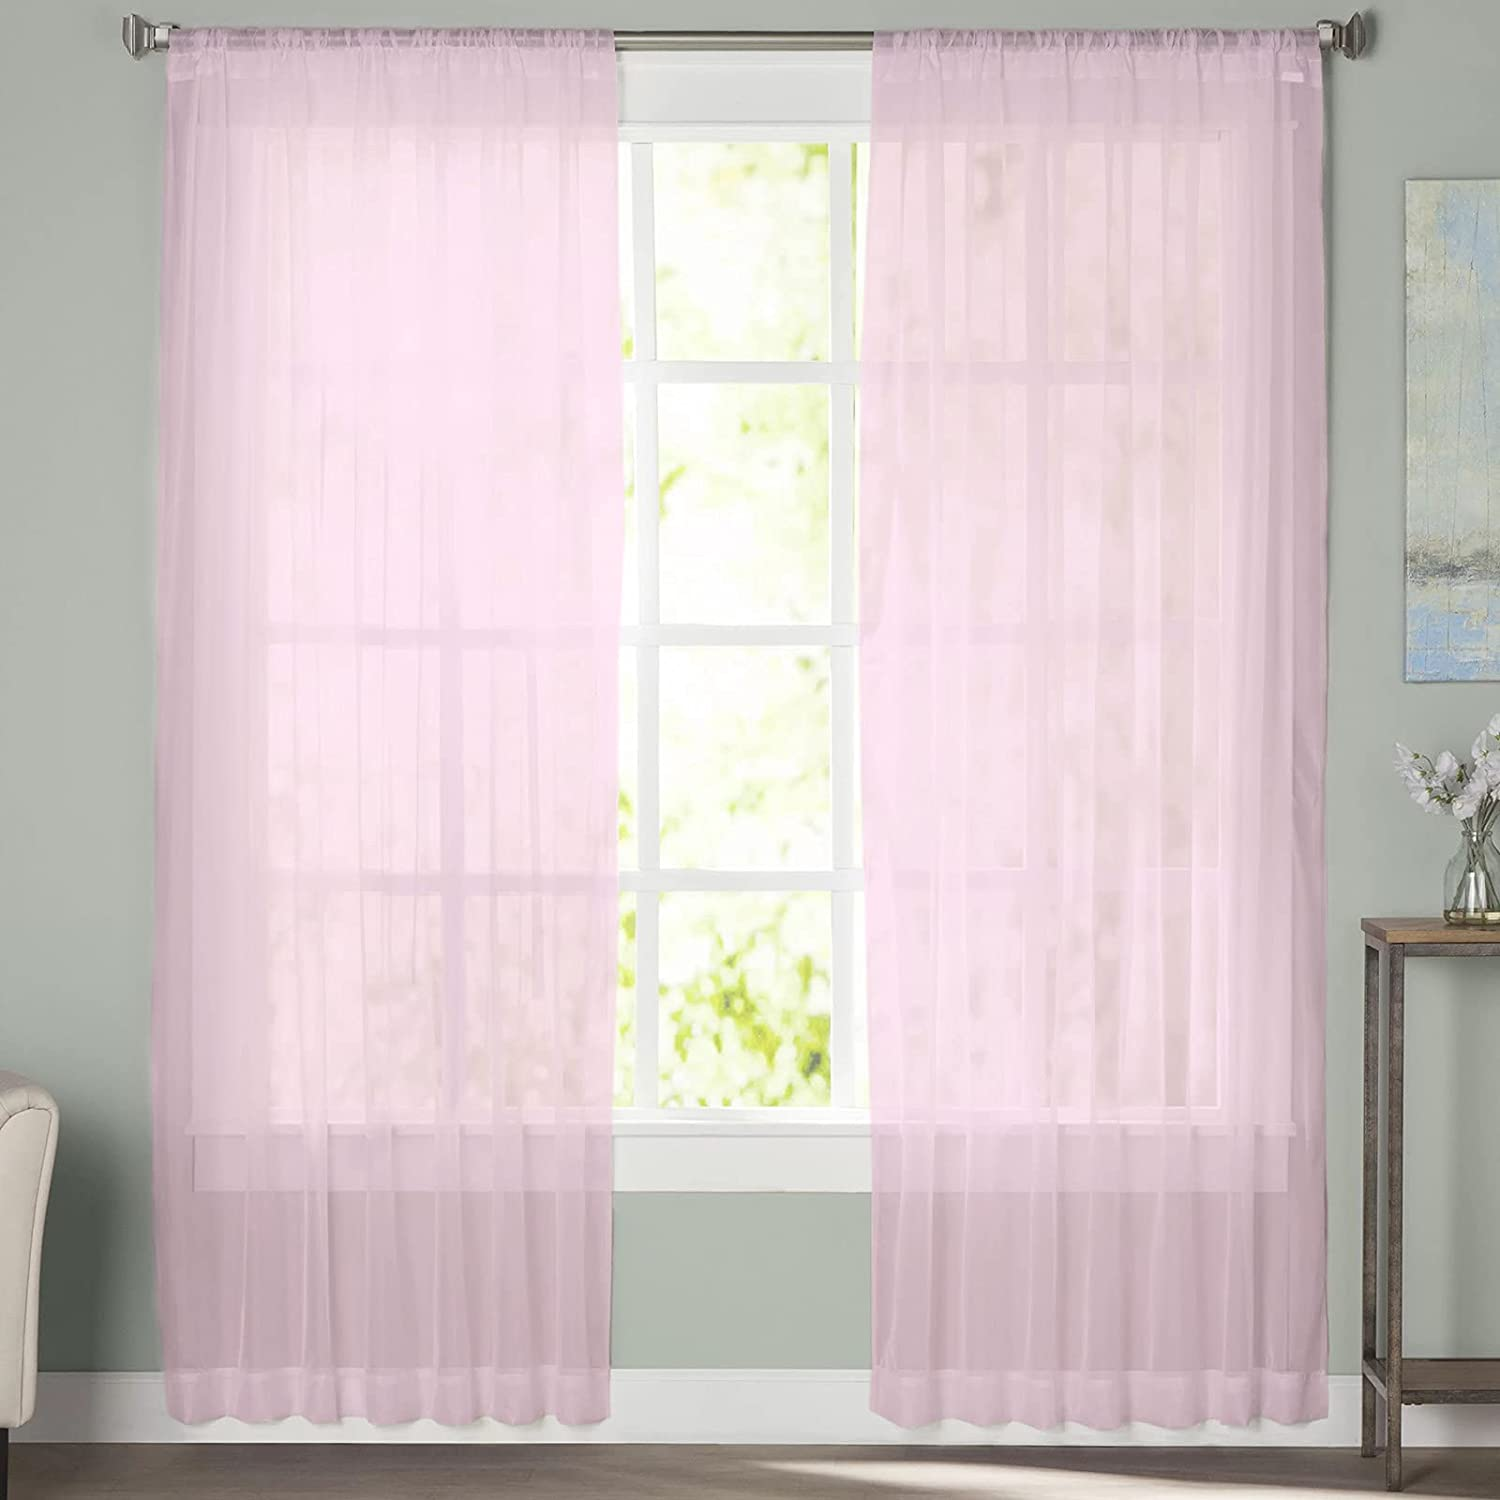 Sheer Curtains 72 NEW before selling Inches Long for Colo Set Atlanta Mall Bedroom 2 Panel Solid